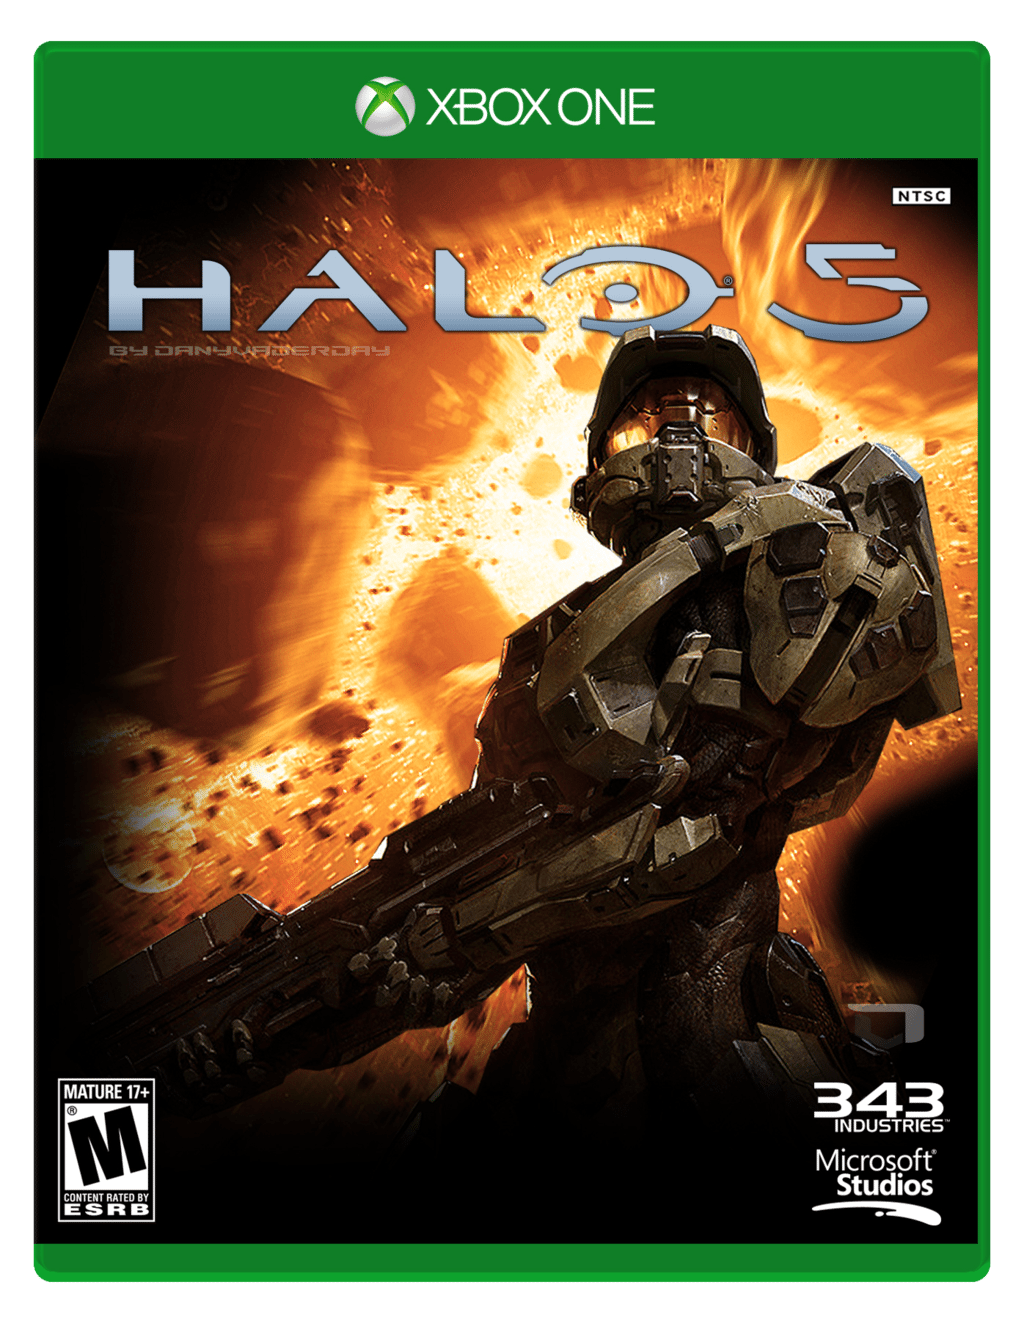 Halo 5 Guardians Cover Halo 5 Guardians Box Cover